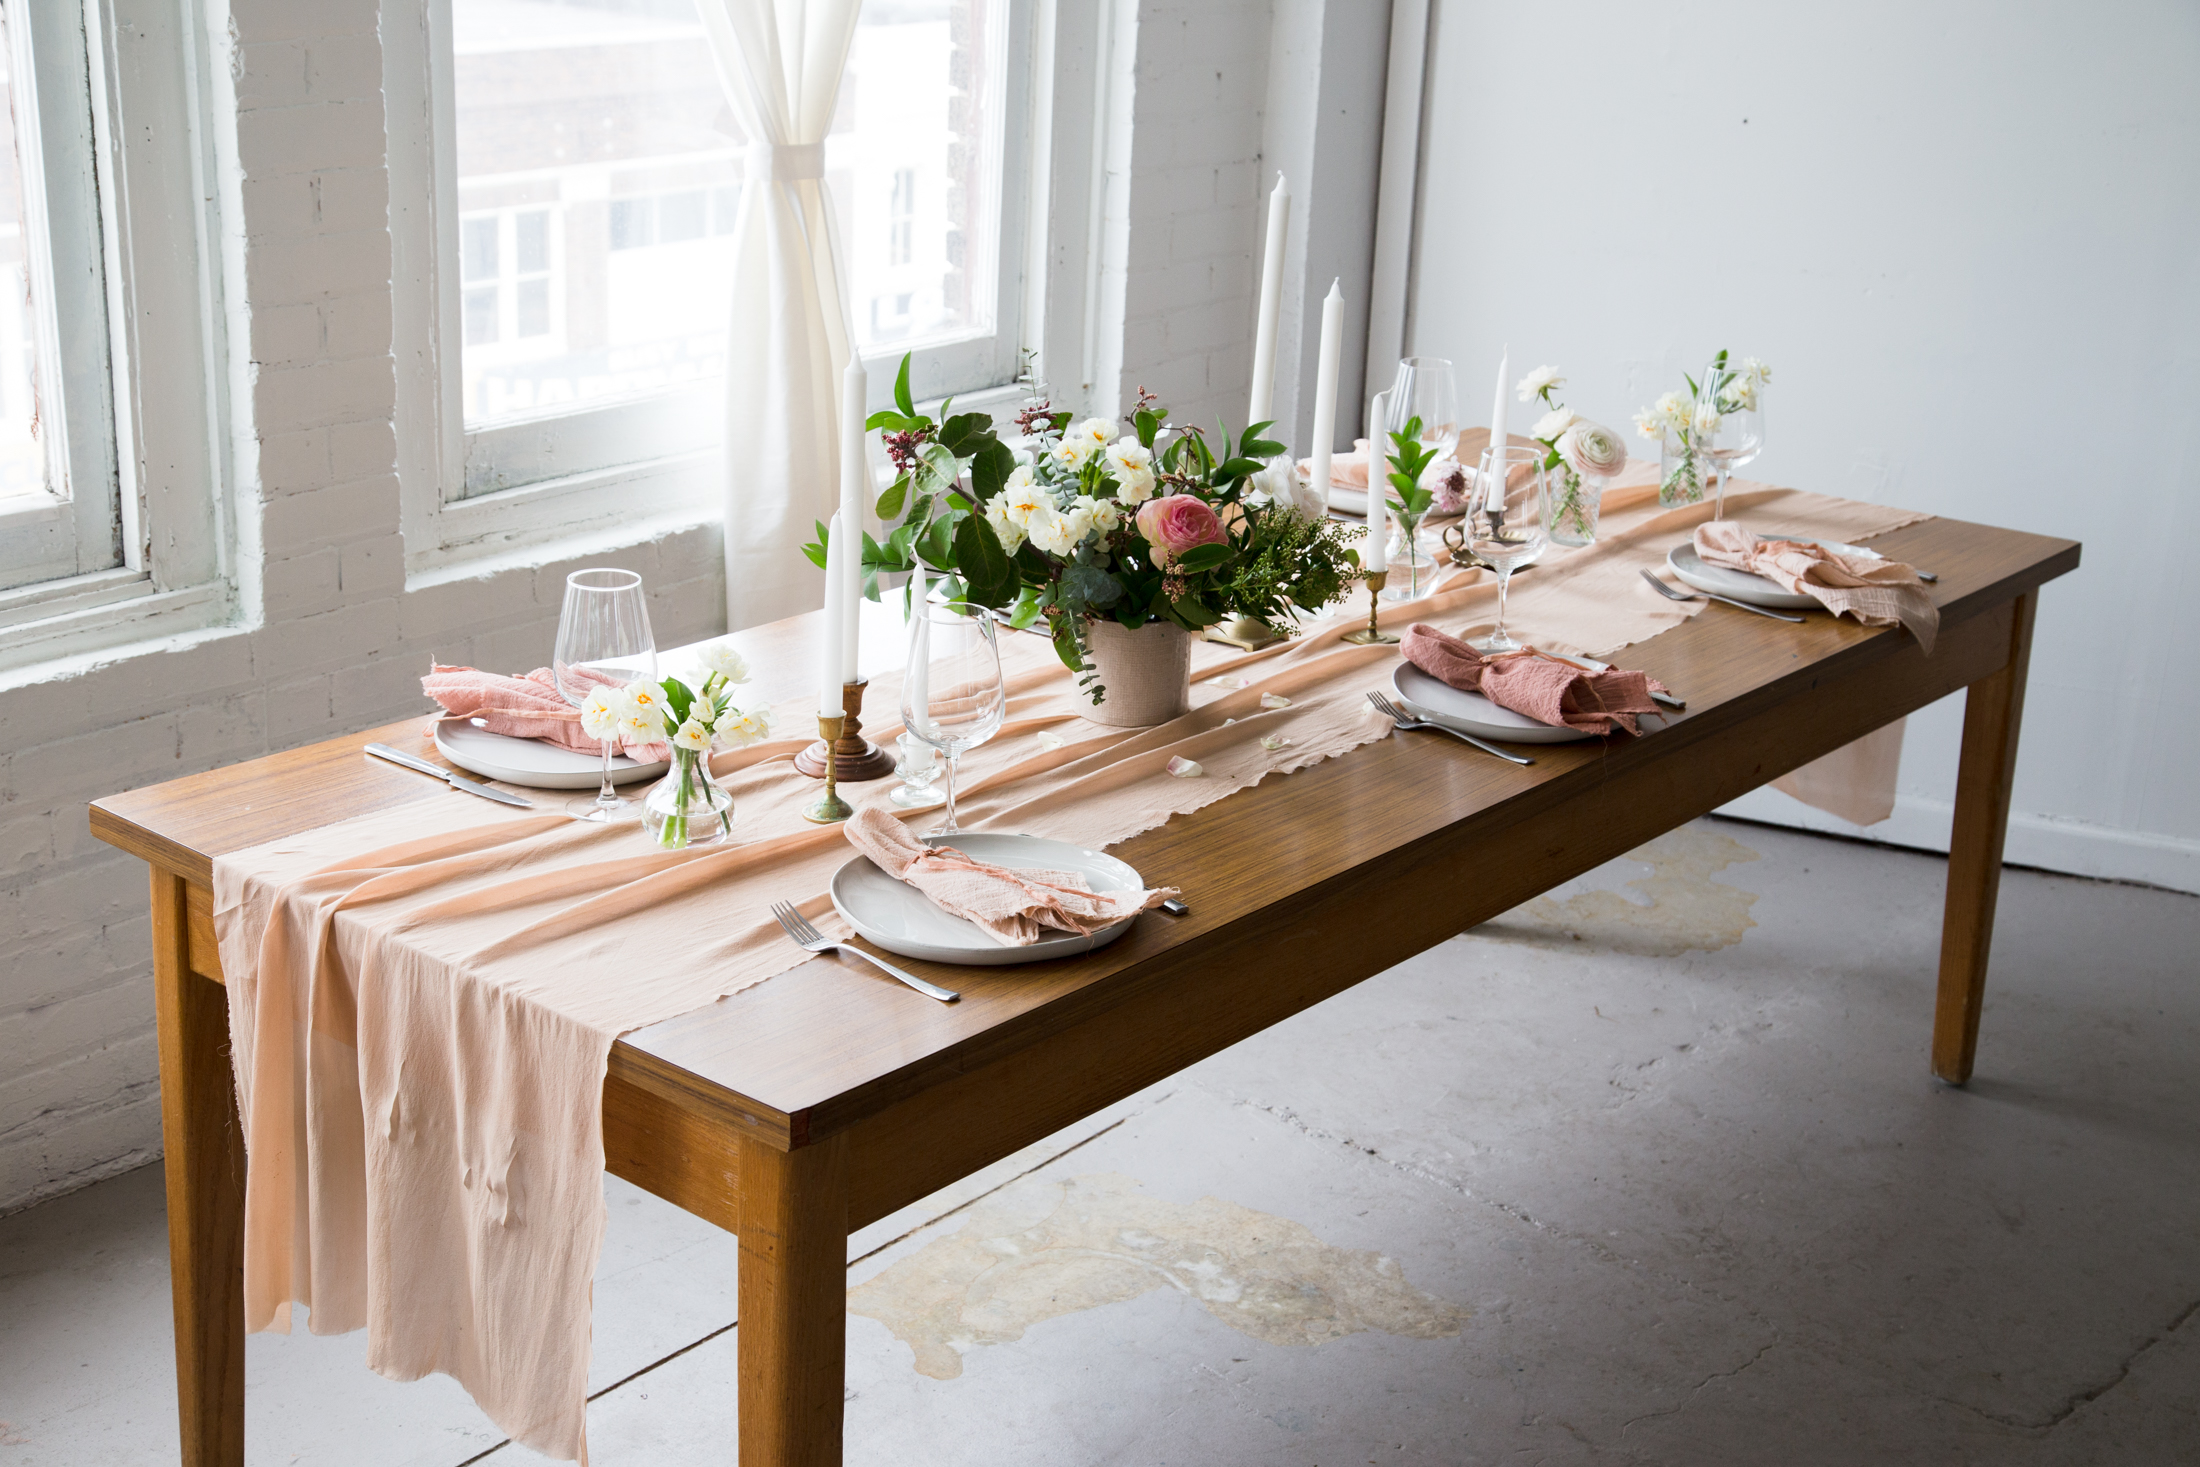 Tablescape-6.jpg